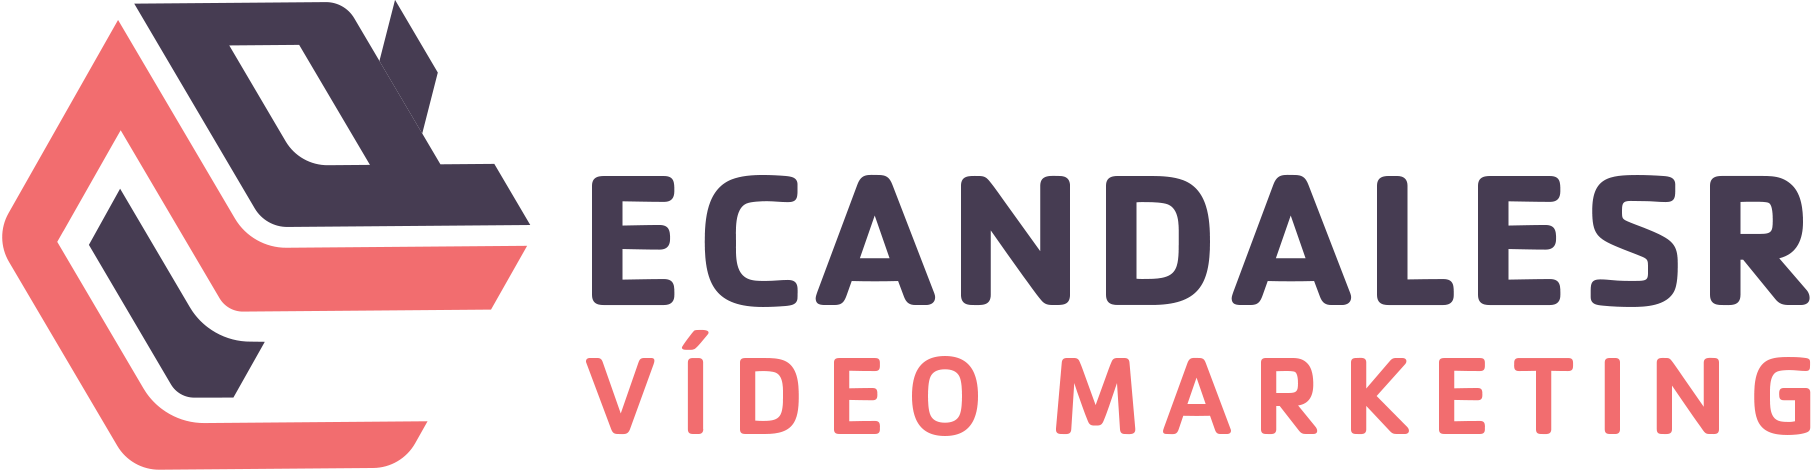 ECANDALESR Vídeo Marketing